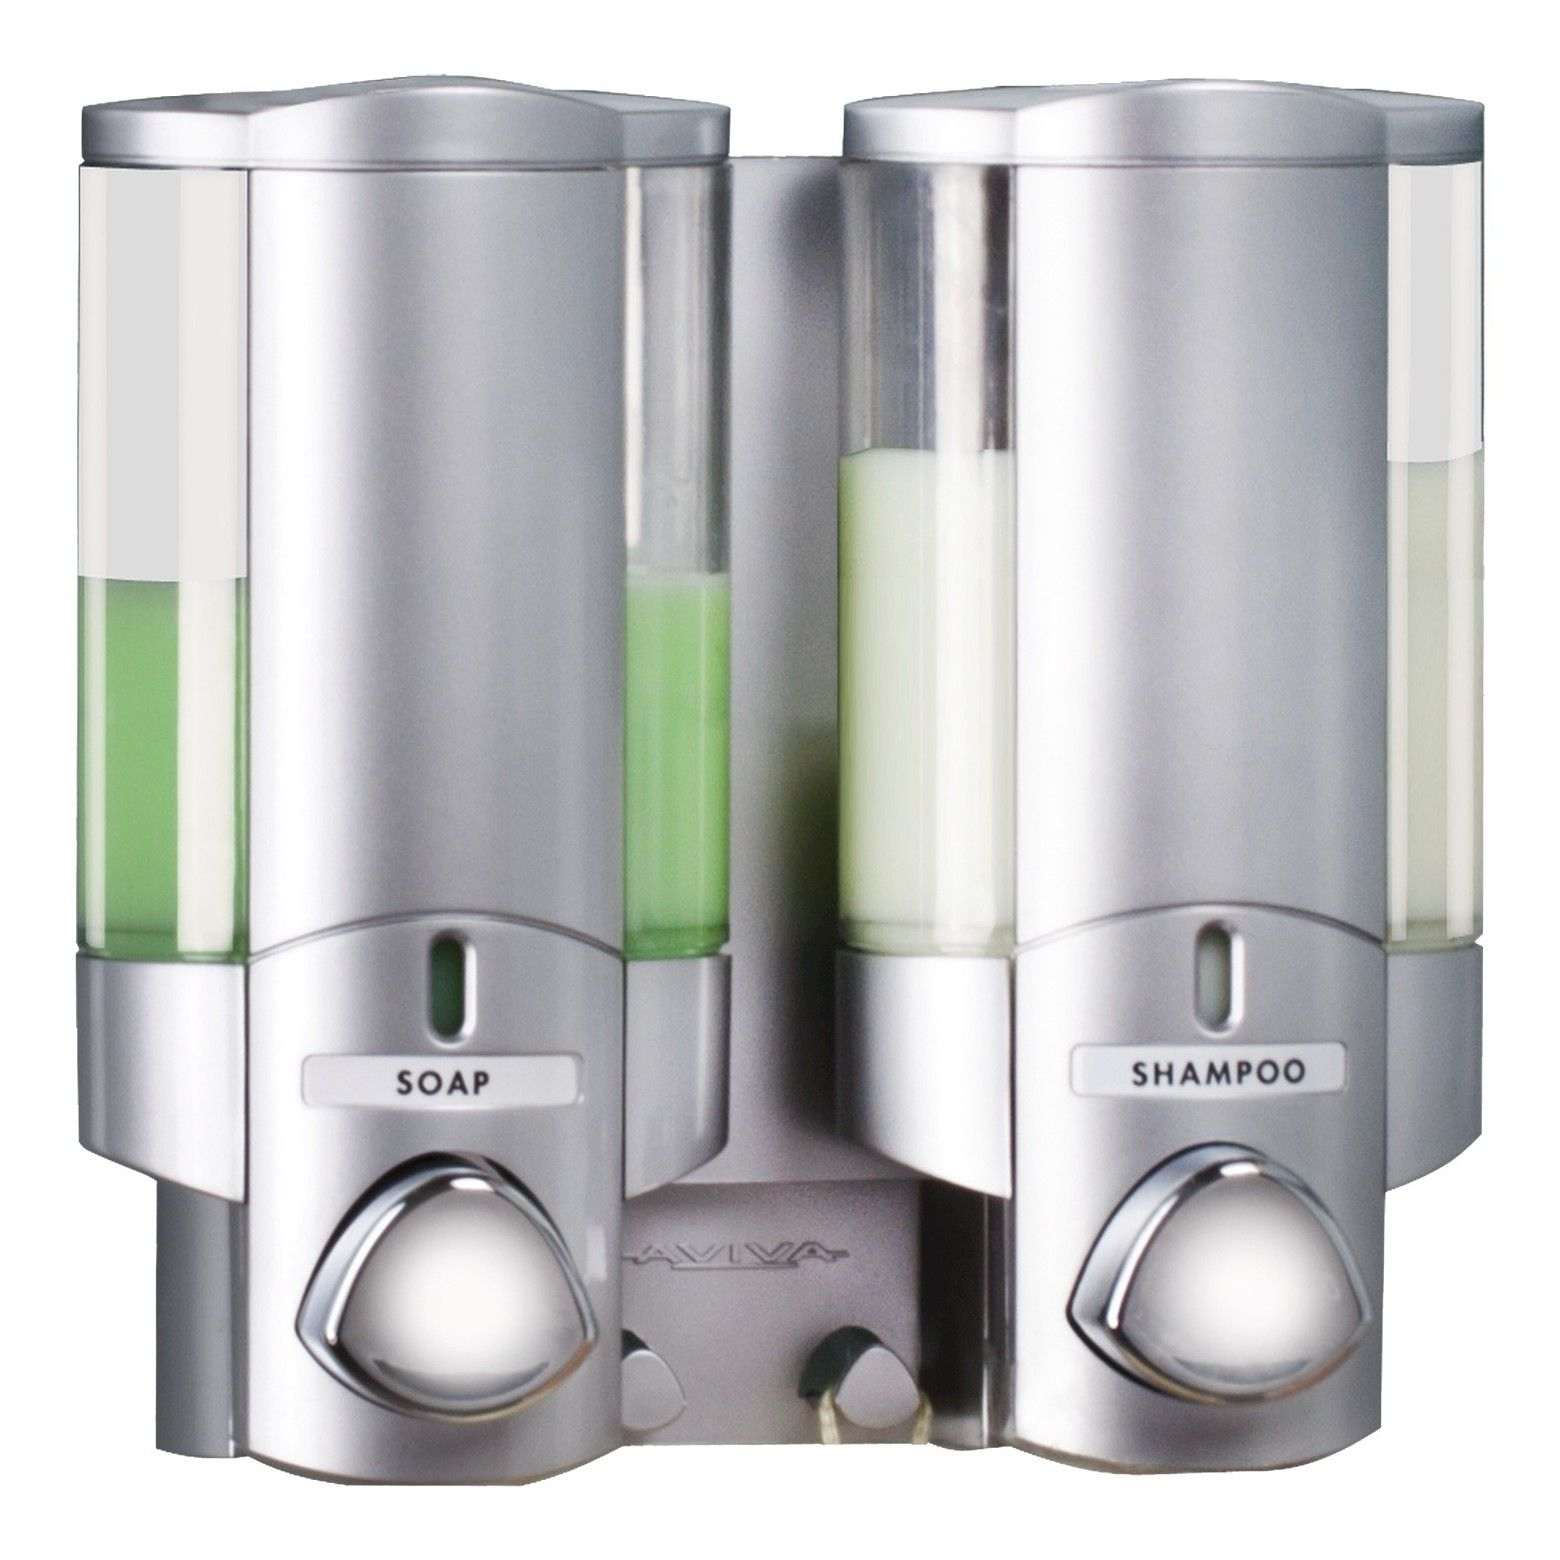 Genial AVIVA Two Chamber Dispenser   Better Living Products : Target